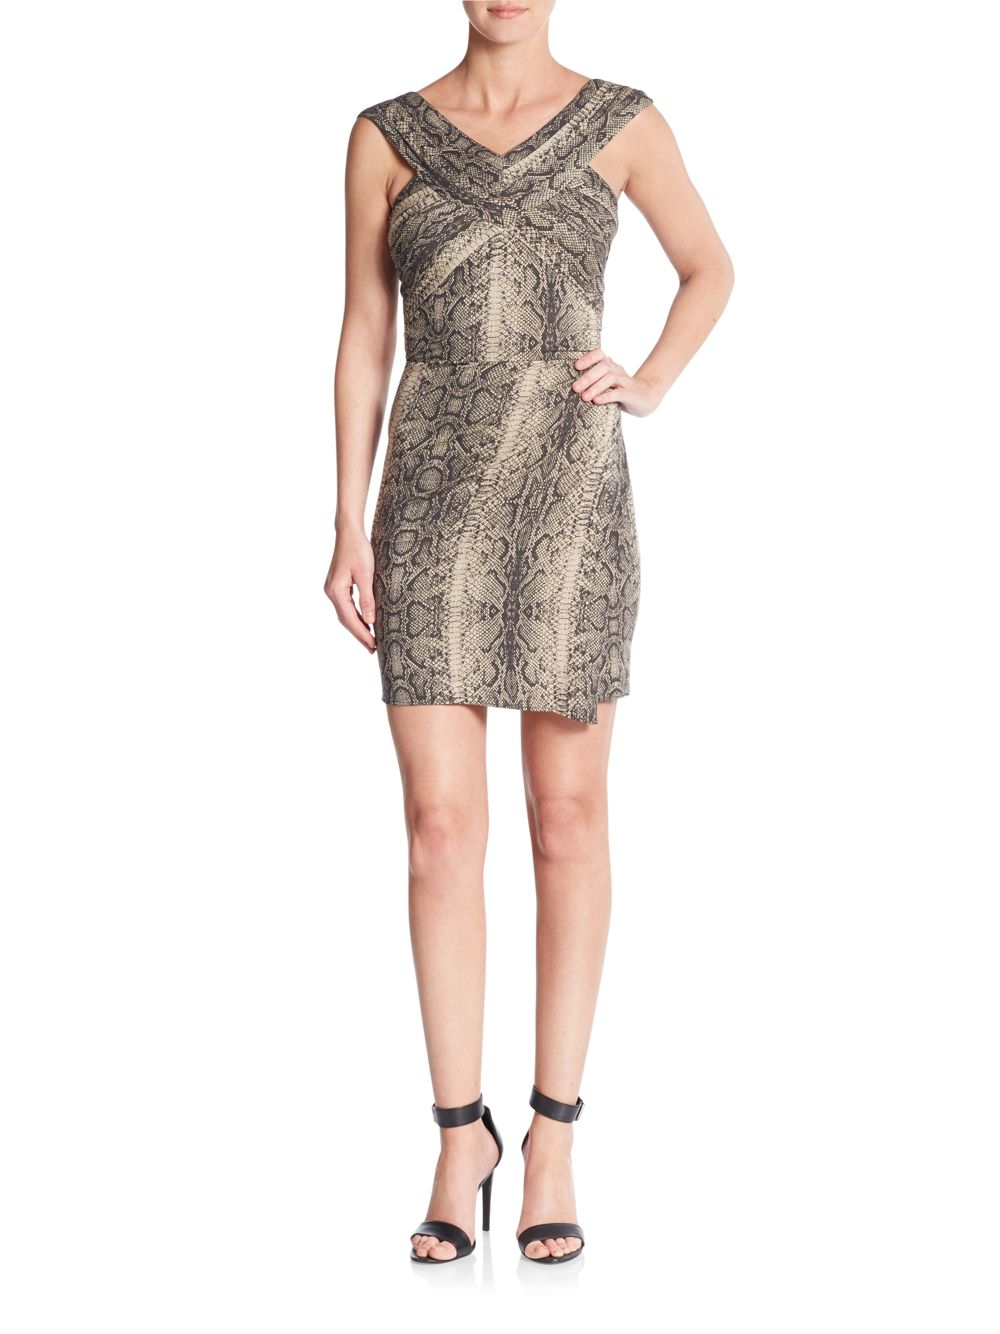 6ba7843900 Lyst - The Kooples Python-print Bodycon Dress in Gray